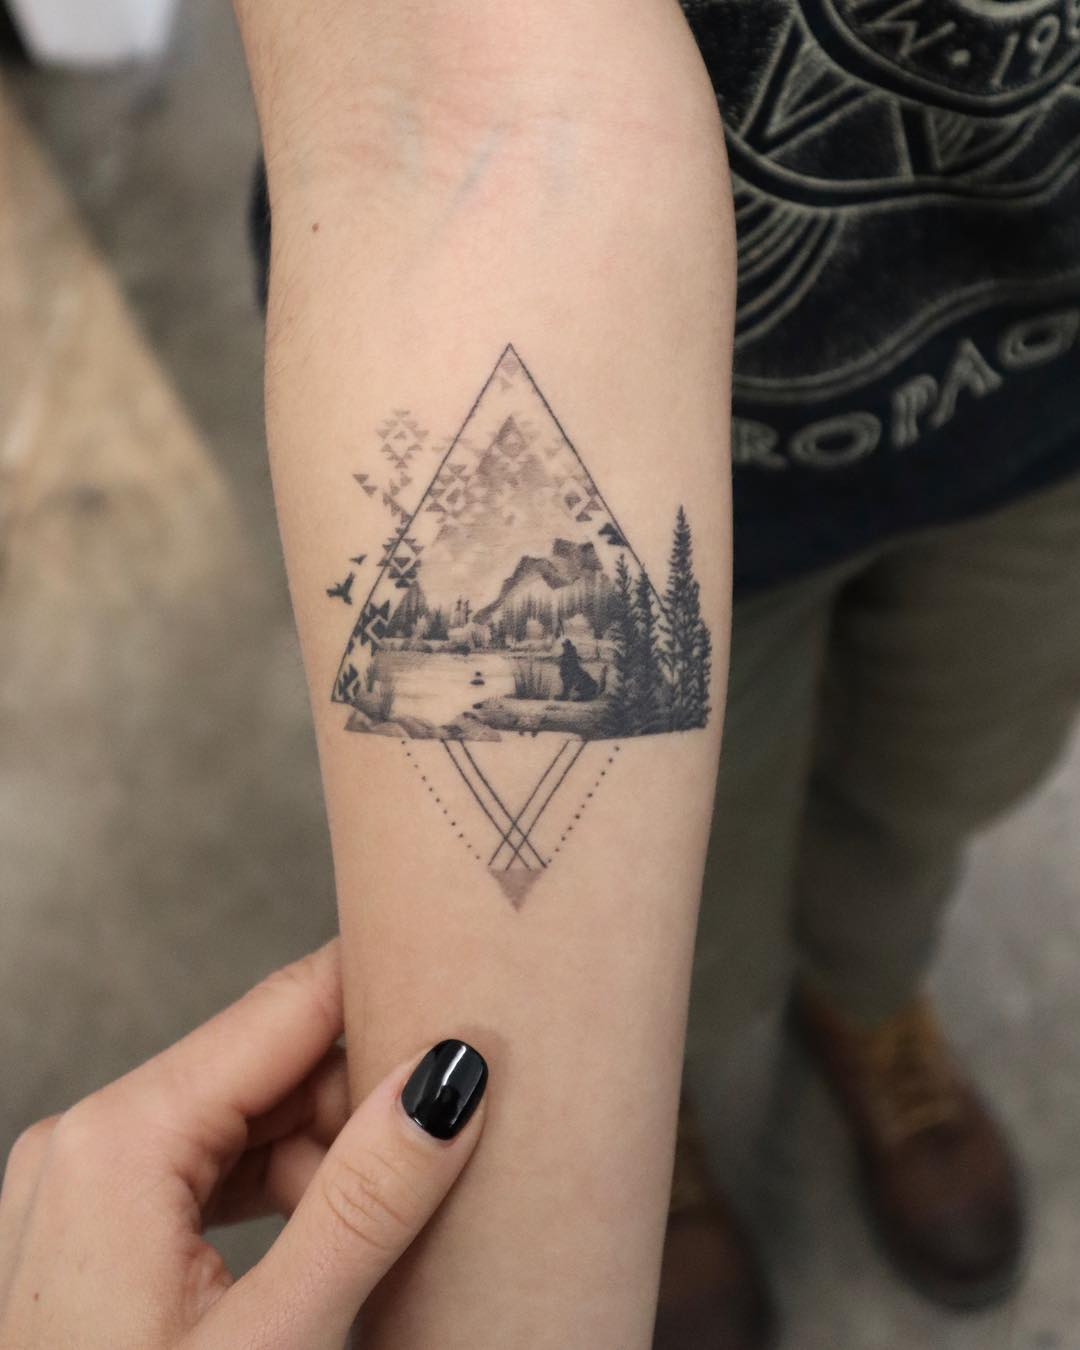 Landscape on a forearm by @trudy_lines_tattoo